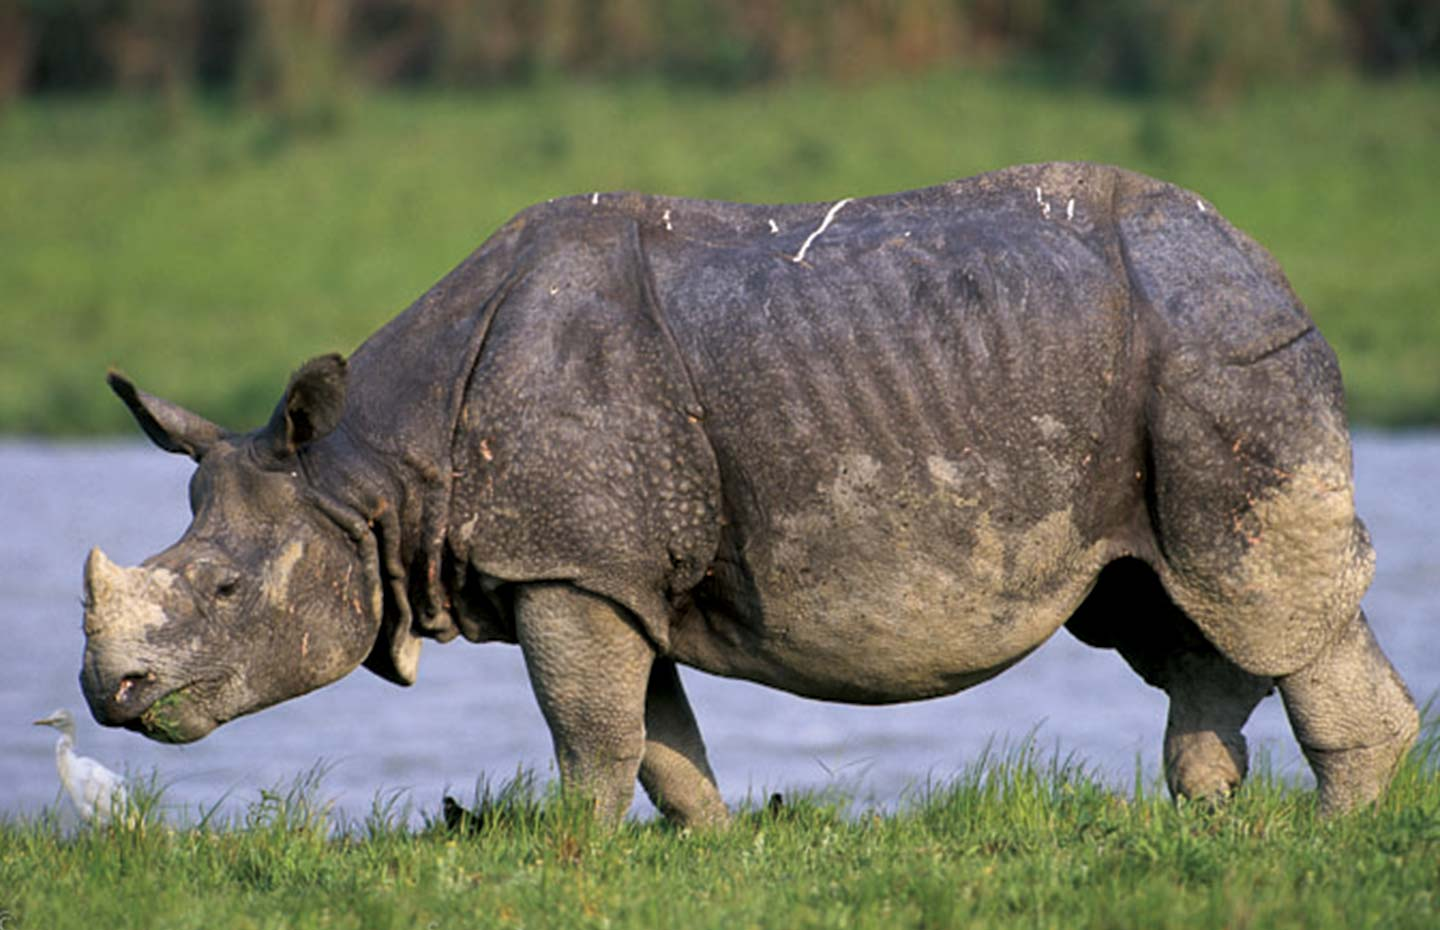 Indian one horned rhinoceros